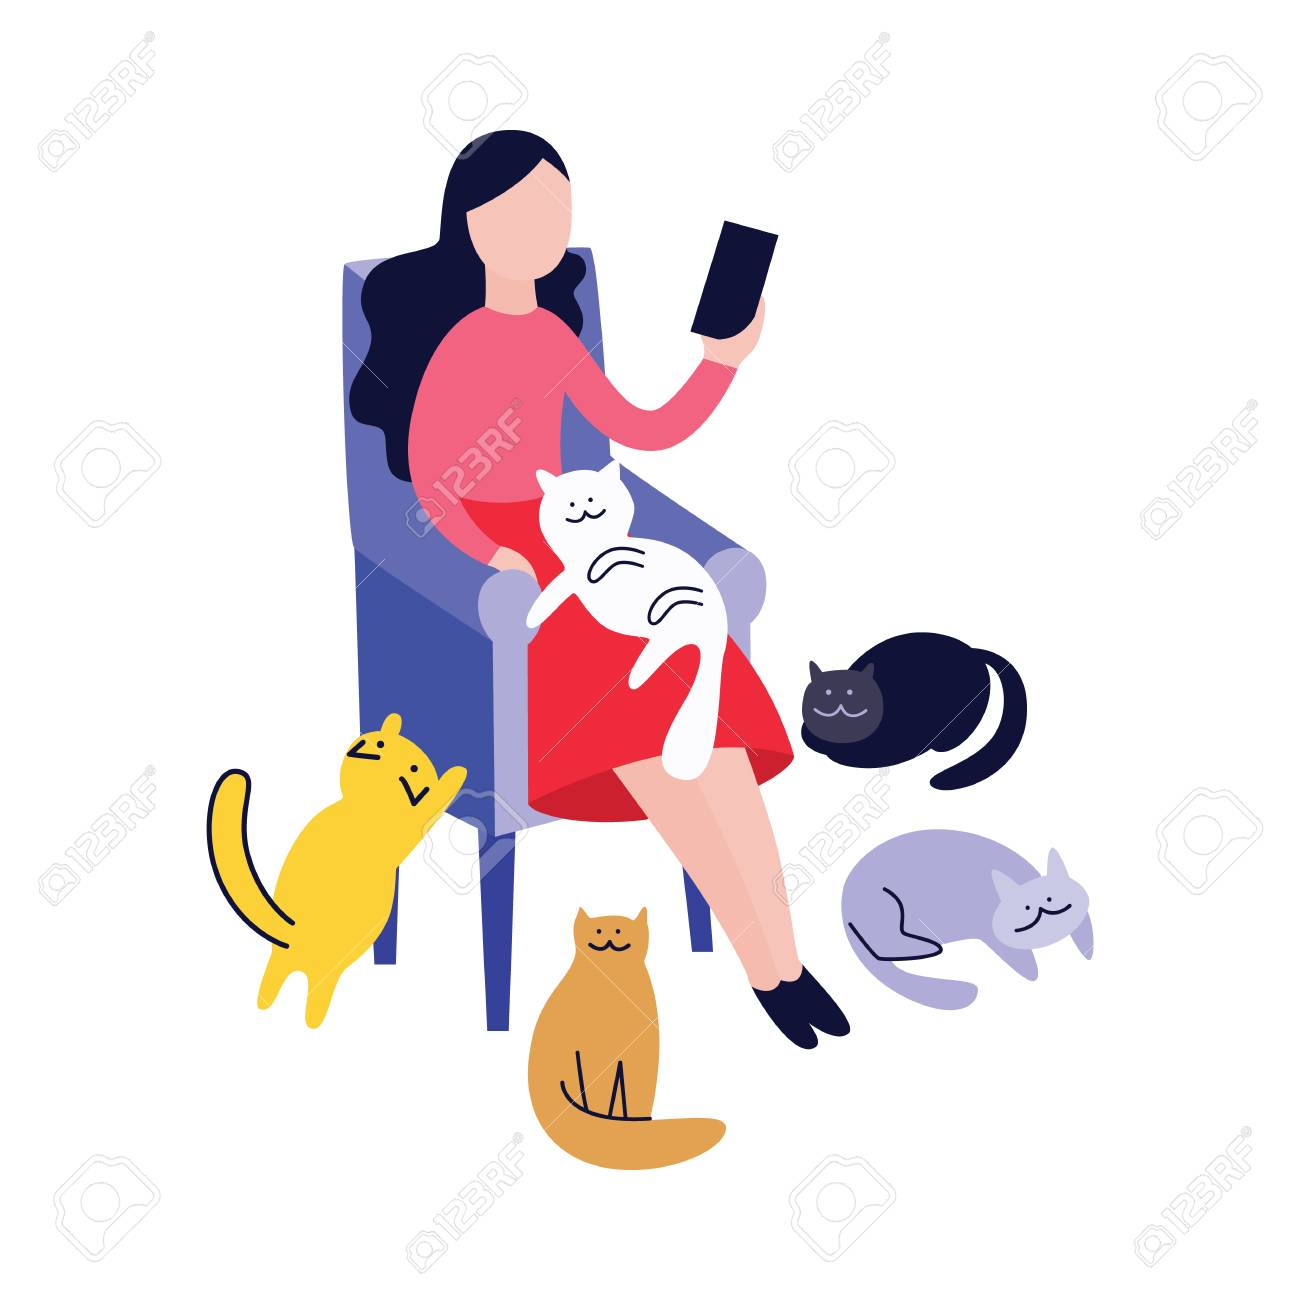 Woman sitting in armchair and reading surrounded by cats flat cartoon style, vector illustration isolated on white background. Pets nearby cat lady relaxing in chair and holding book or gadget - 123466102